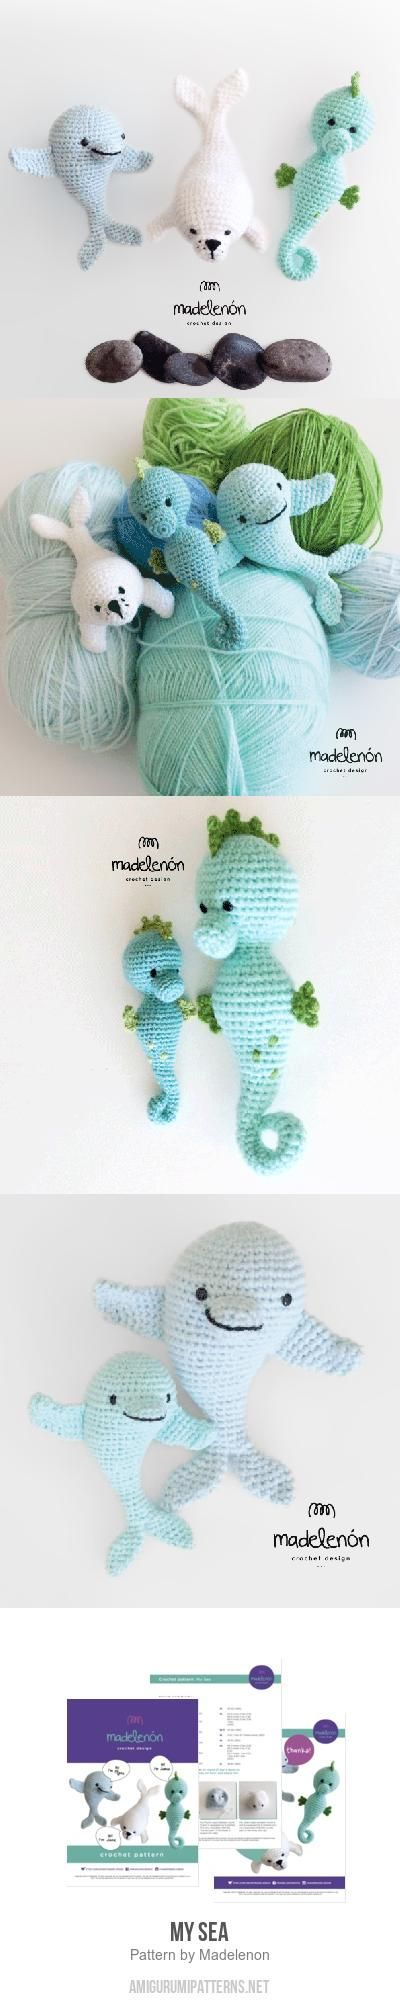 My Sea Amigurumi Pattern. Hypocampe